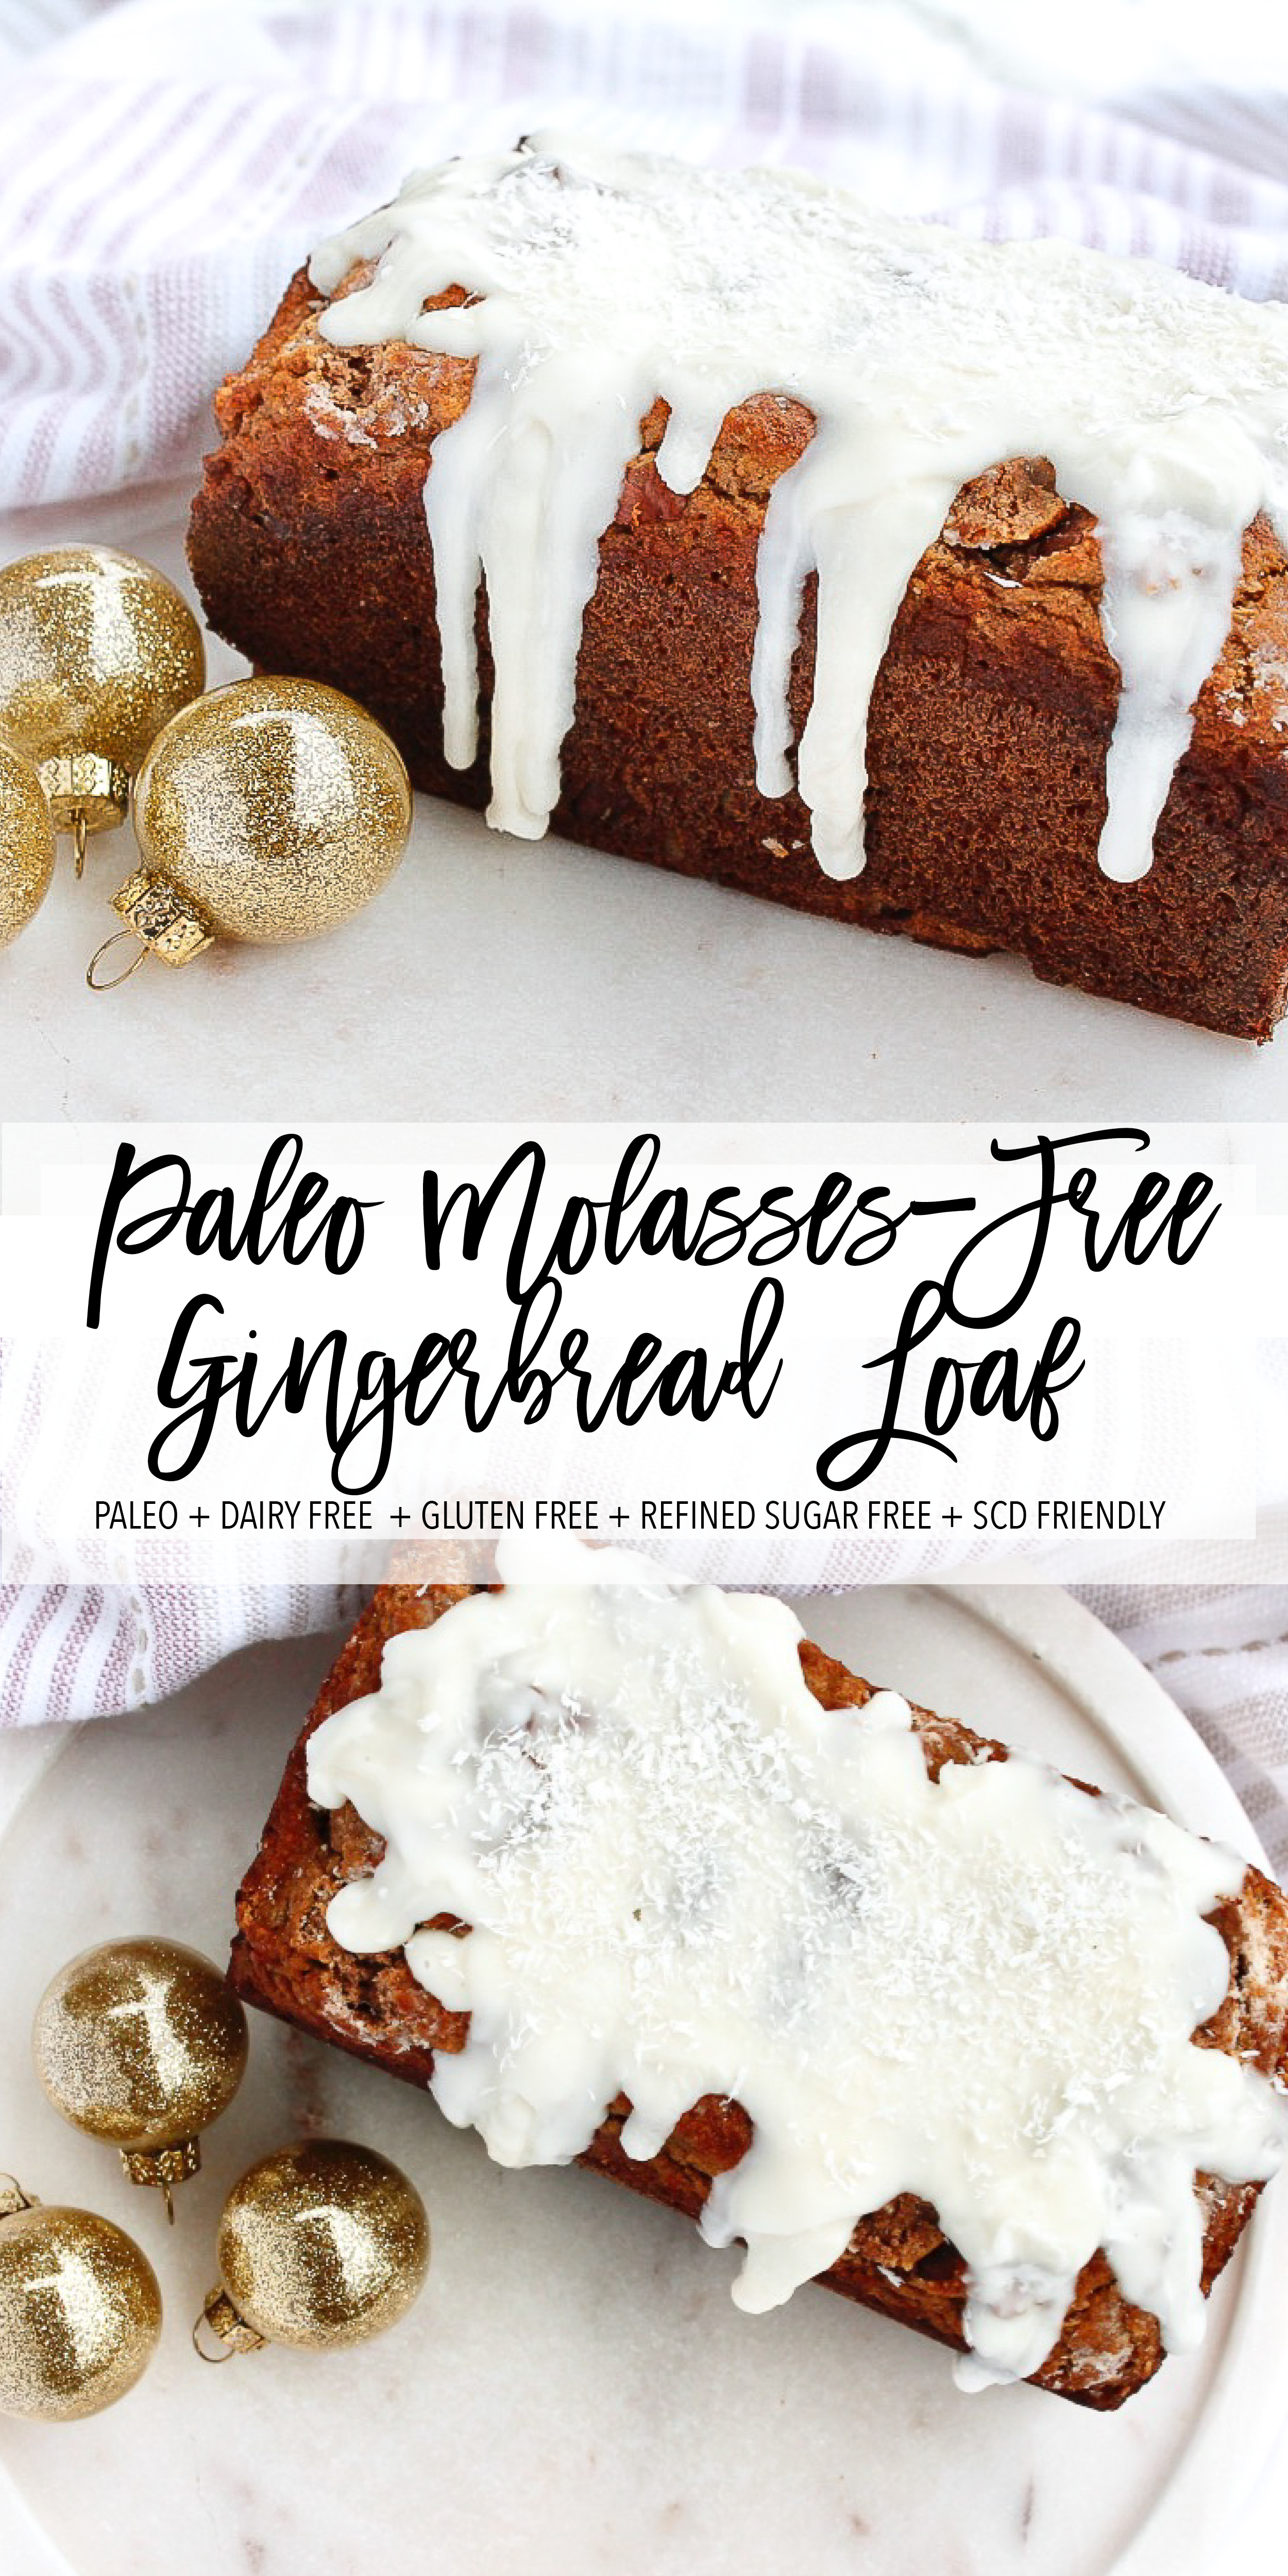 t's officially the season for Christmas treats! This paleo molasses free gingerbread loaf is grain free, gluten free, dairy free, refined sugar free and specific carbohydrate diet friendly! Iced with coconut butter, it makes the perfect healthy Christmas dessert! Click through for the recipe! #paleobaking #paleoholidays #specificcarbohydratediet #healthychristmast